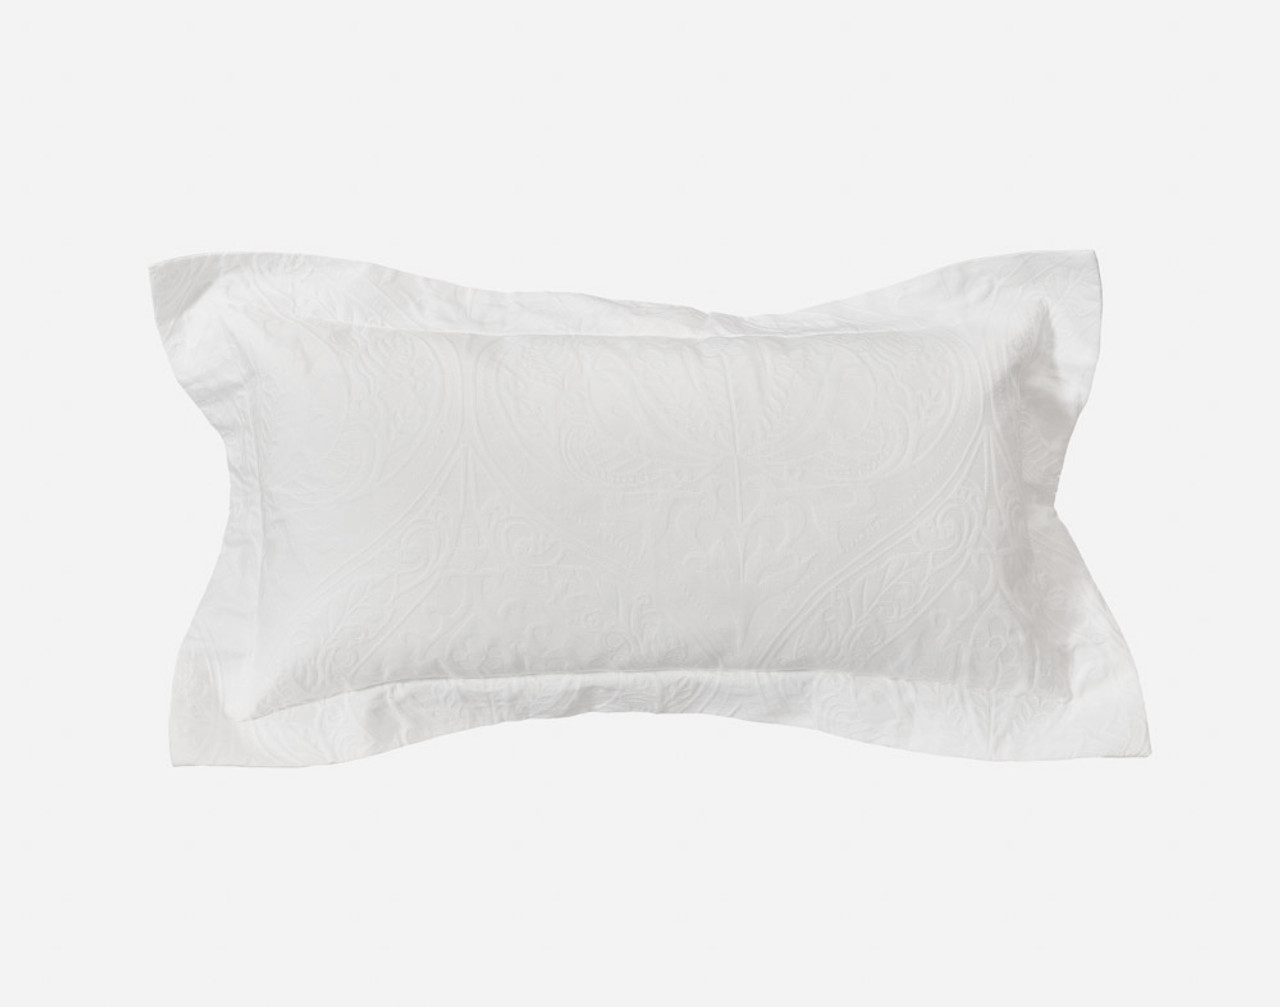 Astoria White Ogee Boudoir Cushion Cover with one inch flange